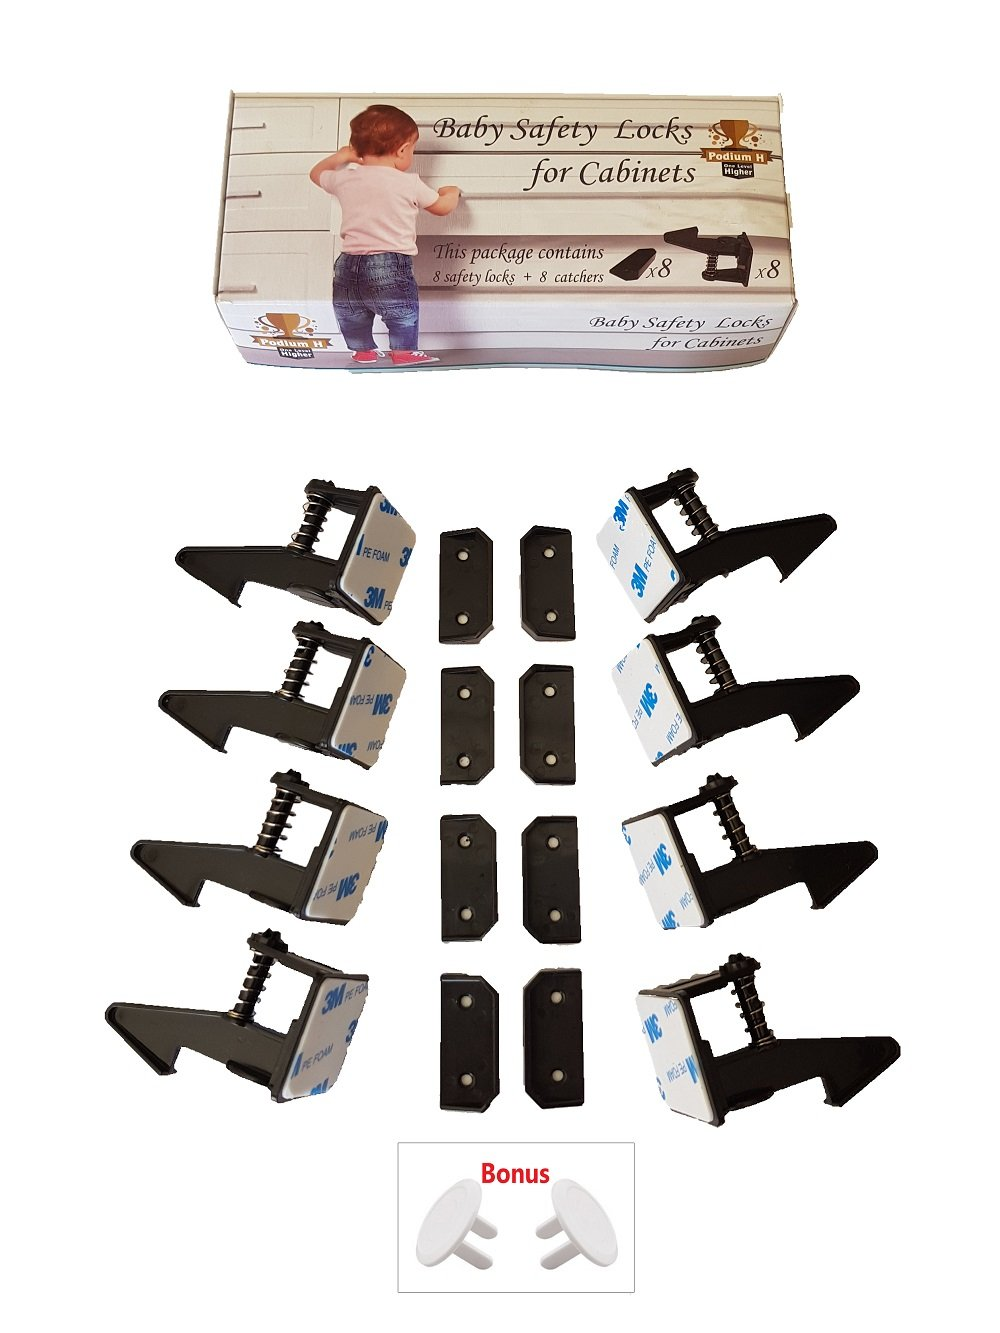 Child Safety Cabinet Locks, Baby Proofing Cabinet Latches,No Magnetic, Easy to Install, Pet Proof Locks, No Tools, Drilling Or Measuring Required